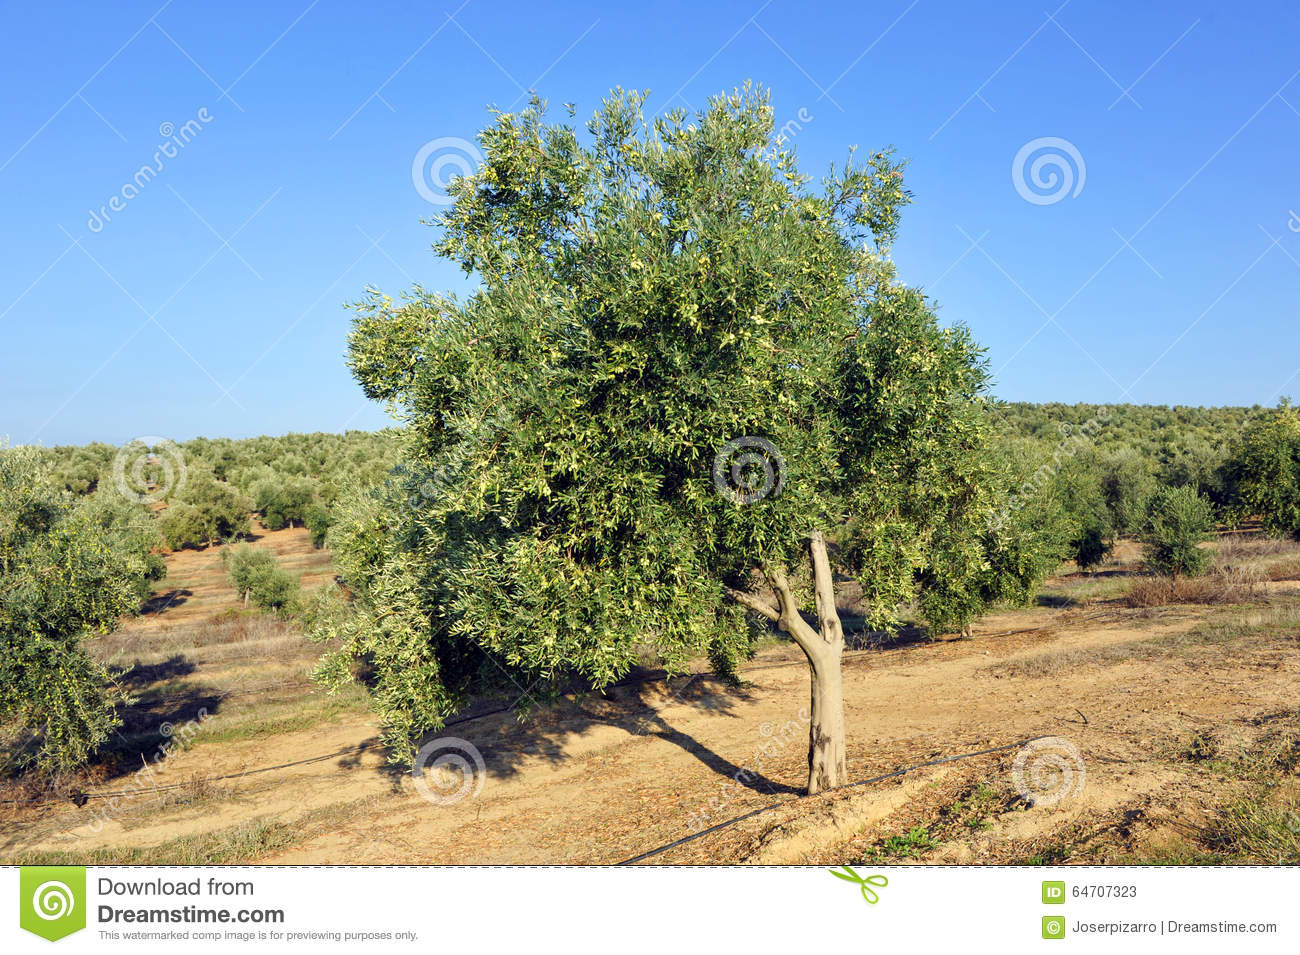 Irrigated Crops, Olive Groves, Andalusia, Spain Stock Photo.